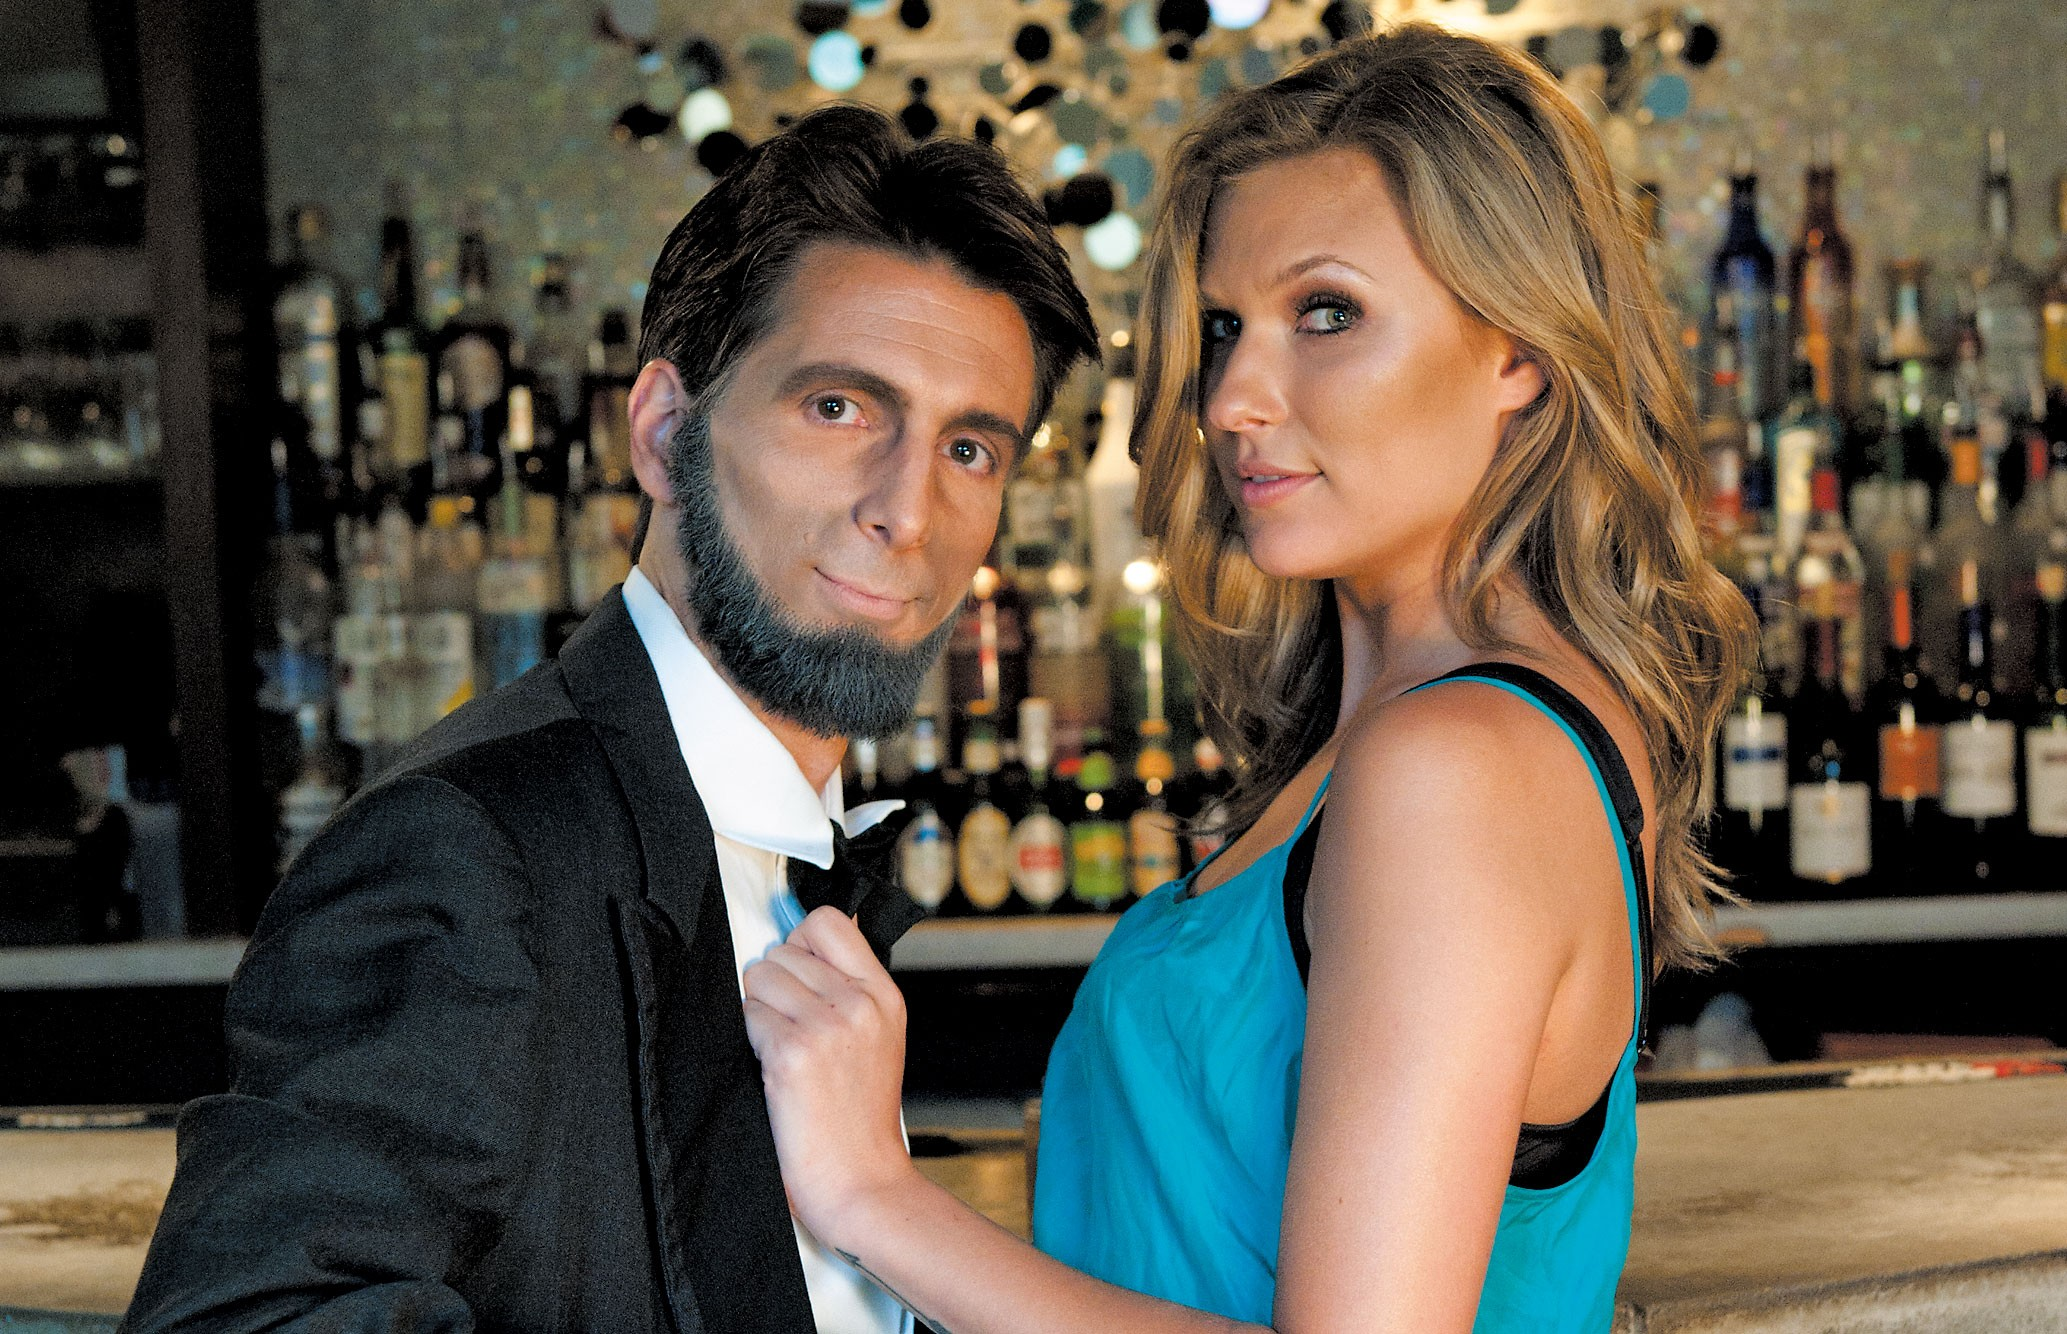 Toast across time: Bartender Otto Bartsch, of Bandito's Burrito Lounge and deLux, as Abraham Lincoln, with bartender Sara Paige of Cha Cha's Cantina. - SCOTT ELMQUIST